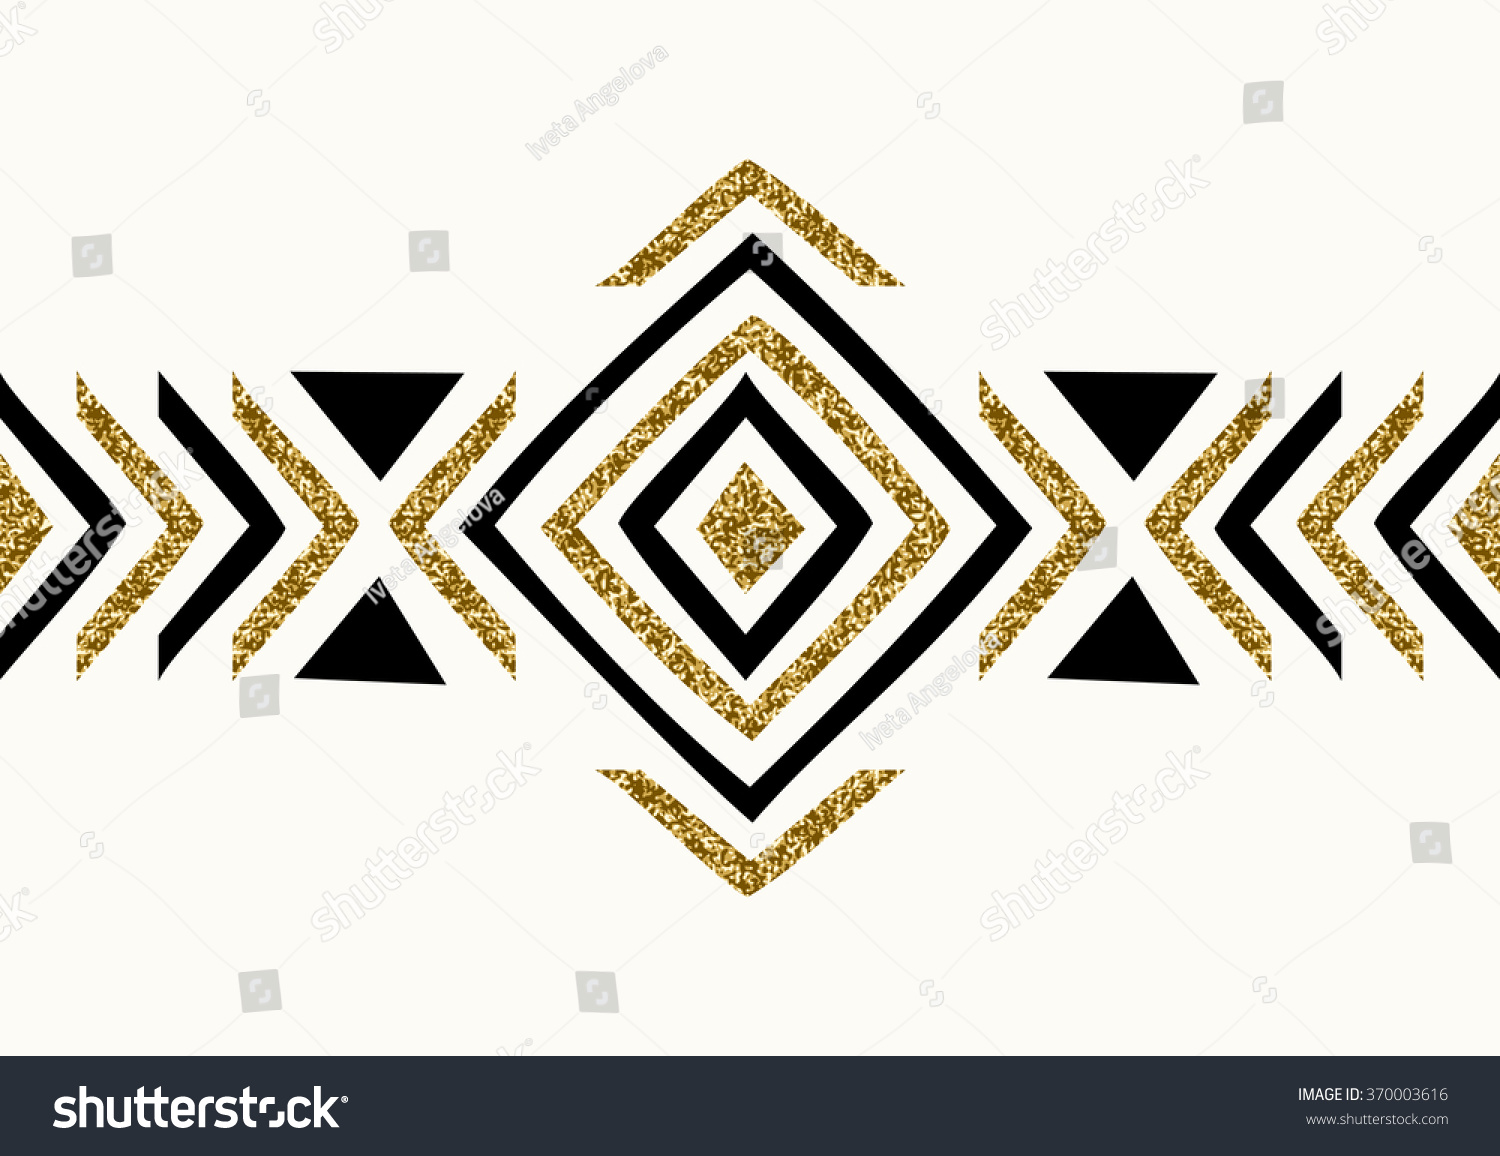 Black t shirt with gold design - Abstract Decorative Geometric Design In Black And Gold Glitter Modern Poster Card Flyer